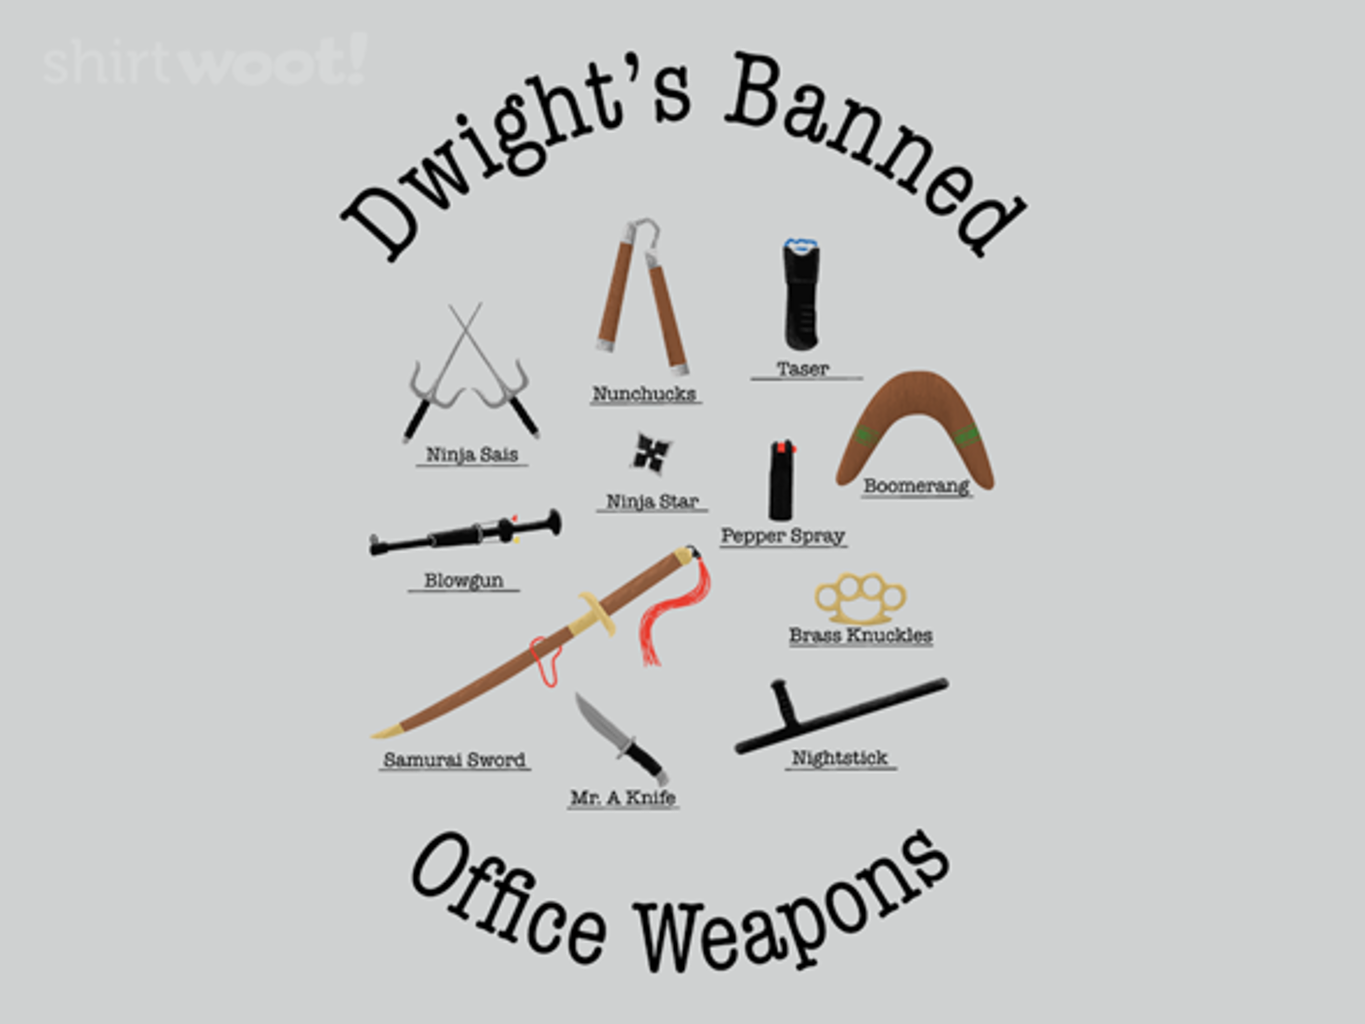 Woot!: Banned Weapons